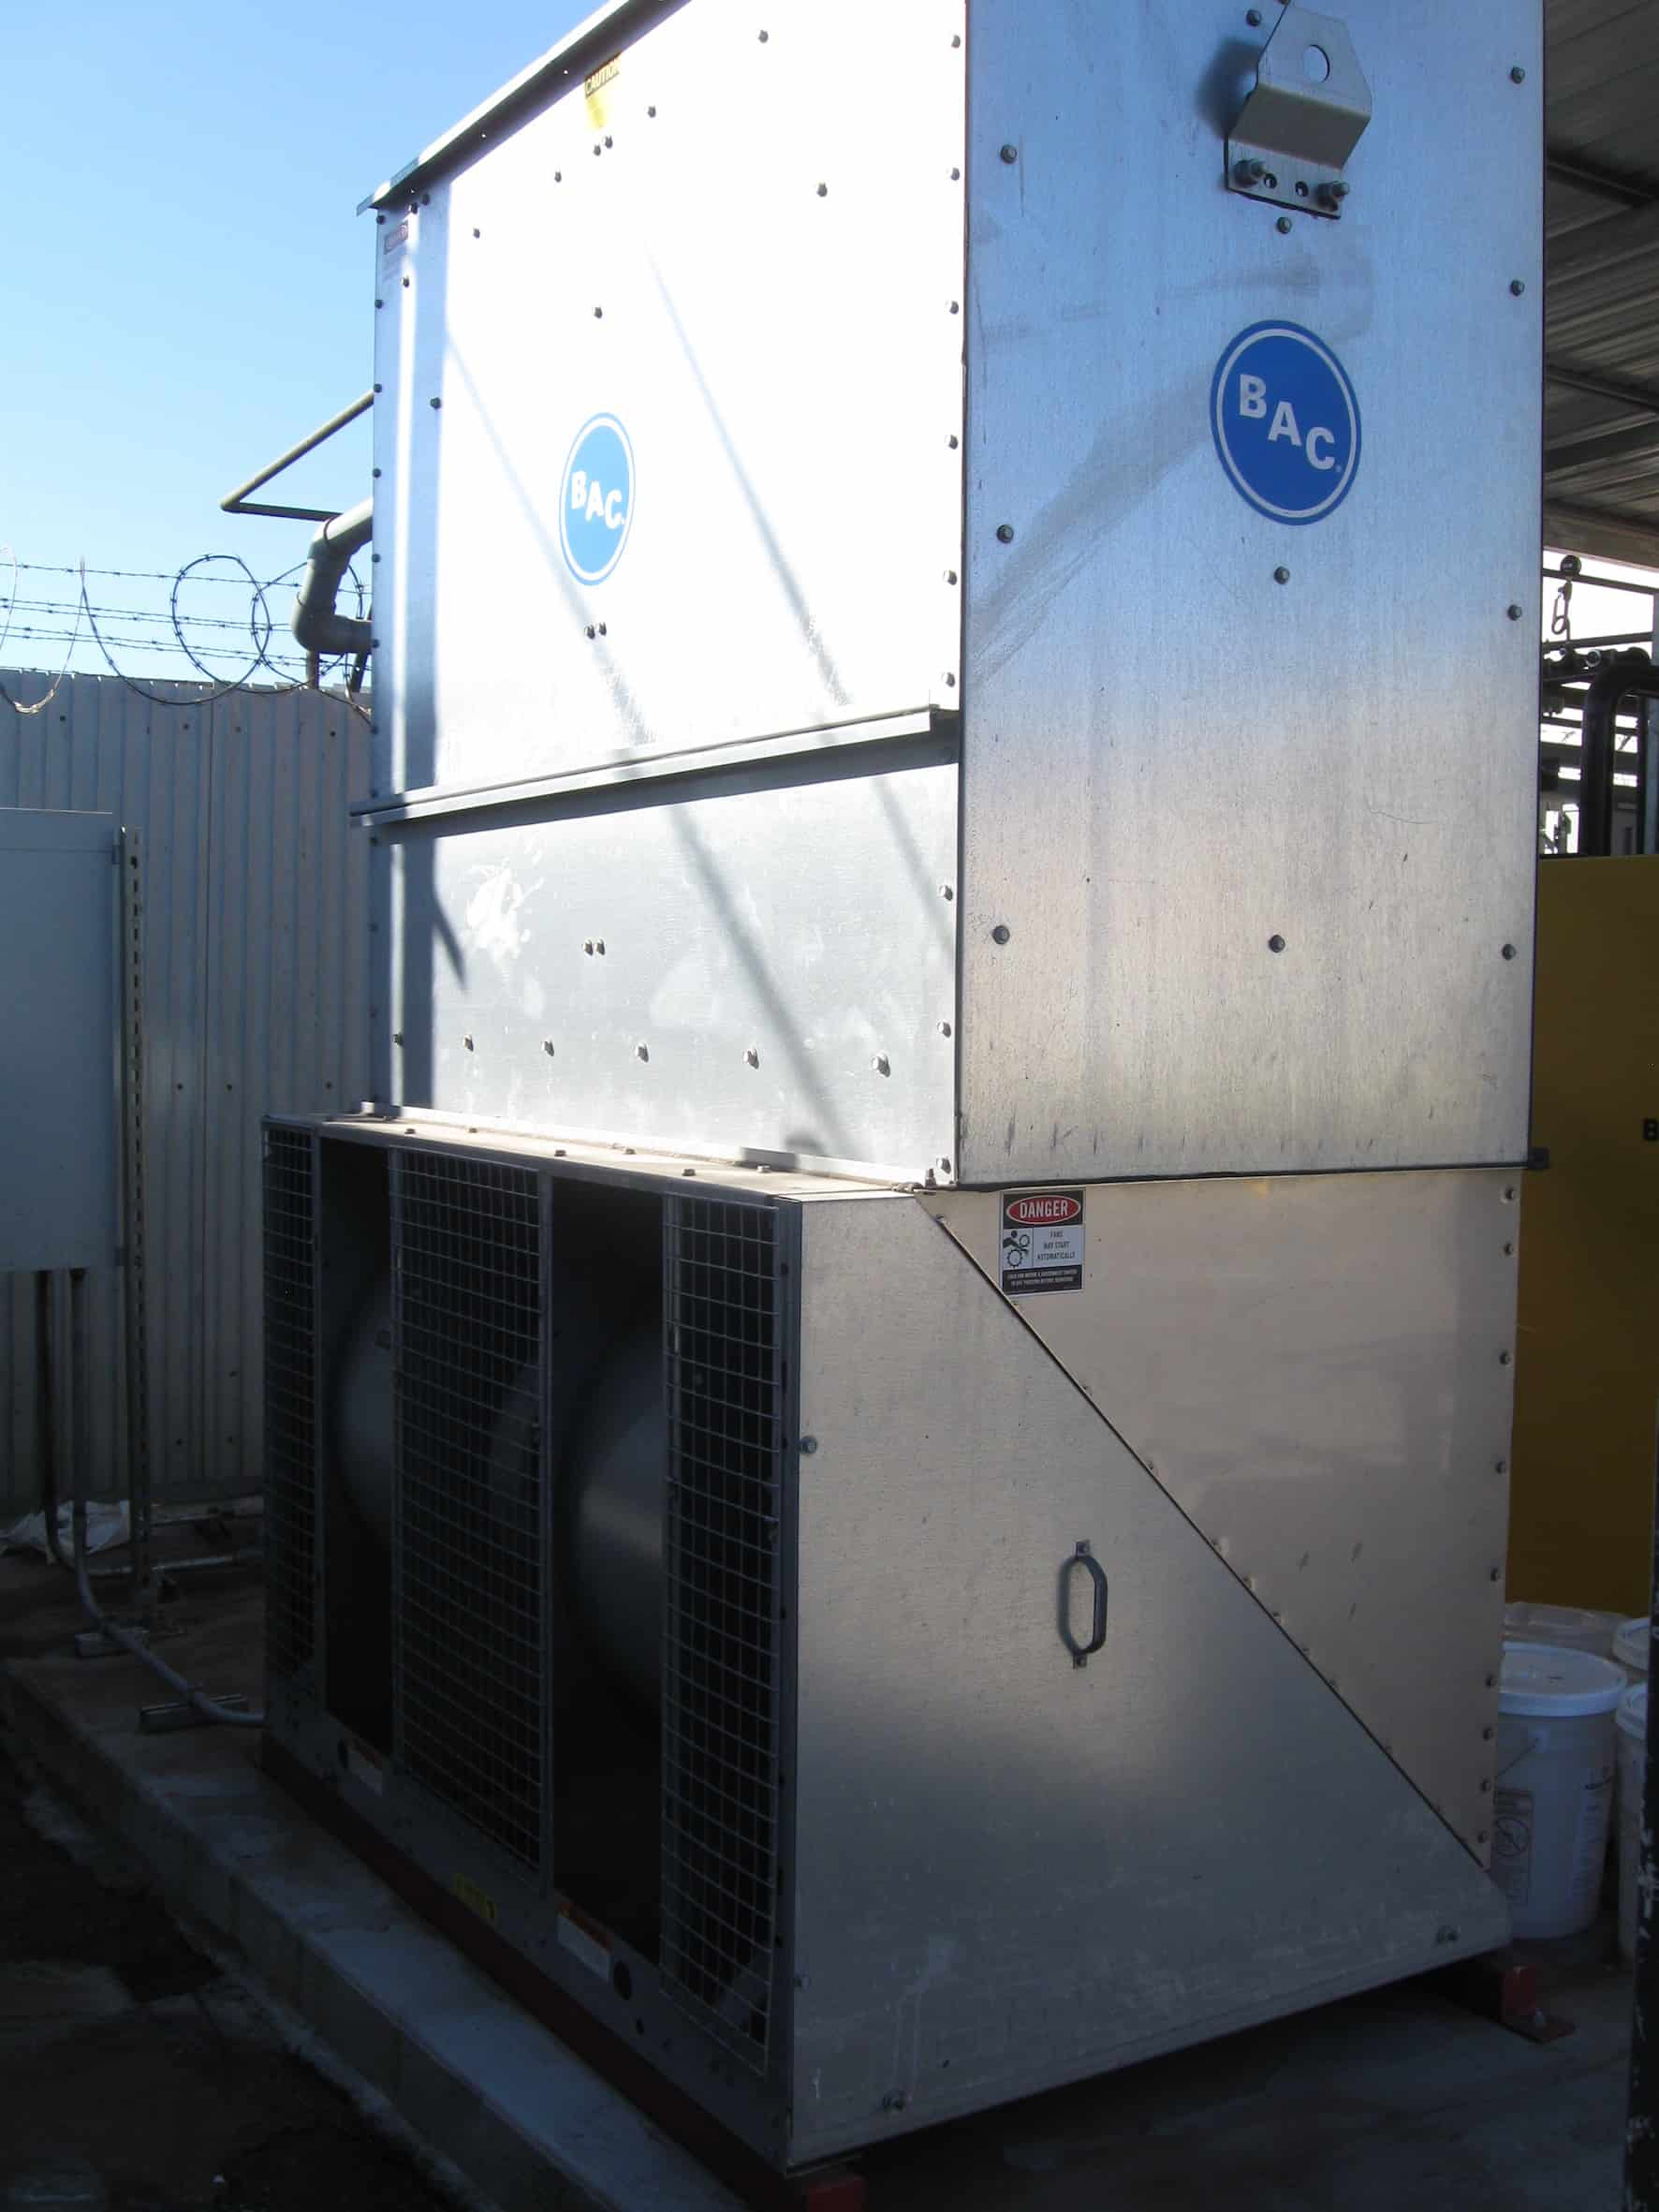 BAC Cooling Tower, Model VTO-052-HM/X